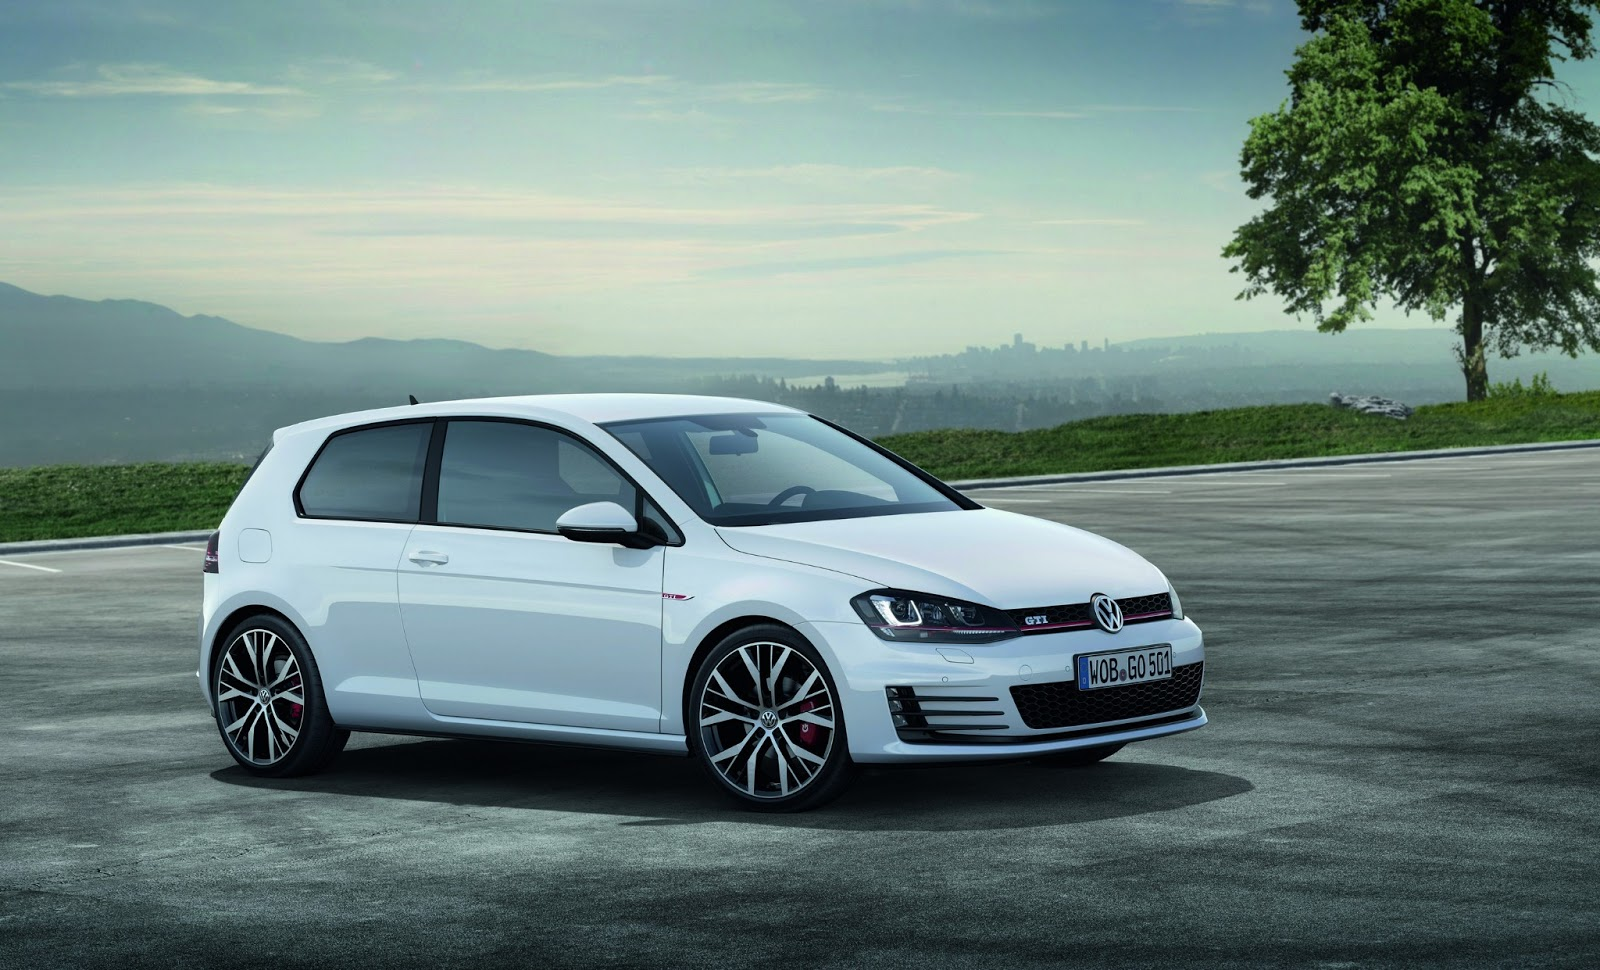 davide458italia 2013 volkswagen golf gti. Black Bedroom Furniture Sets. Home Design Ideas